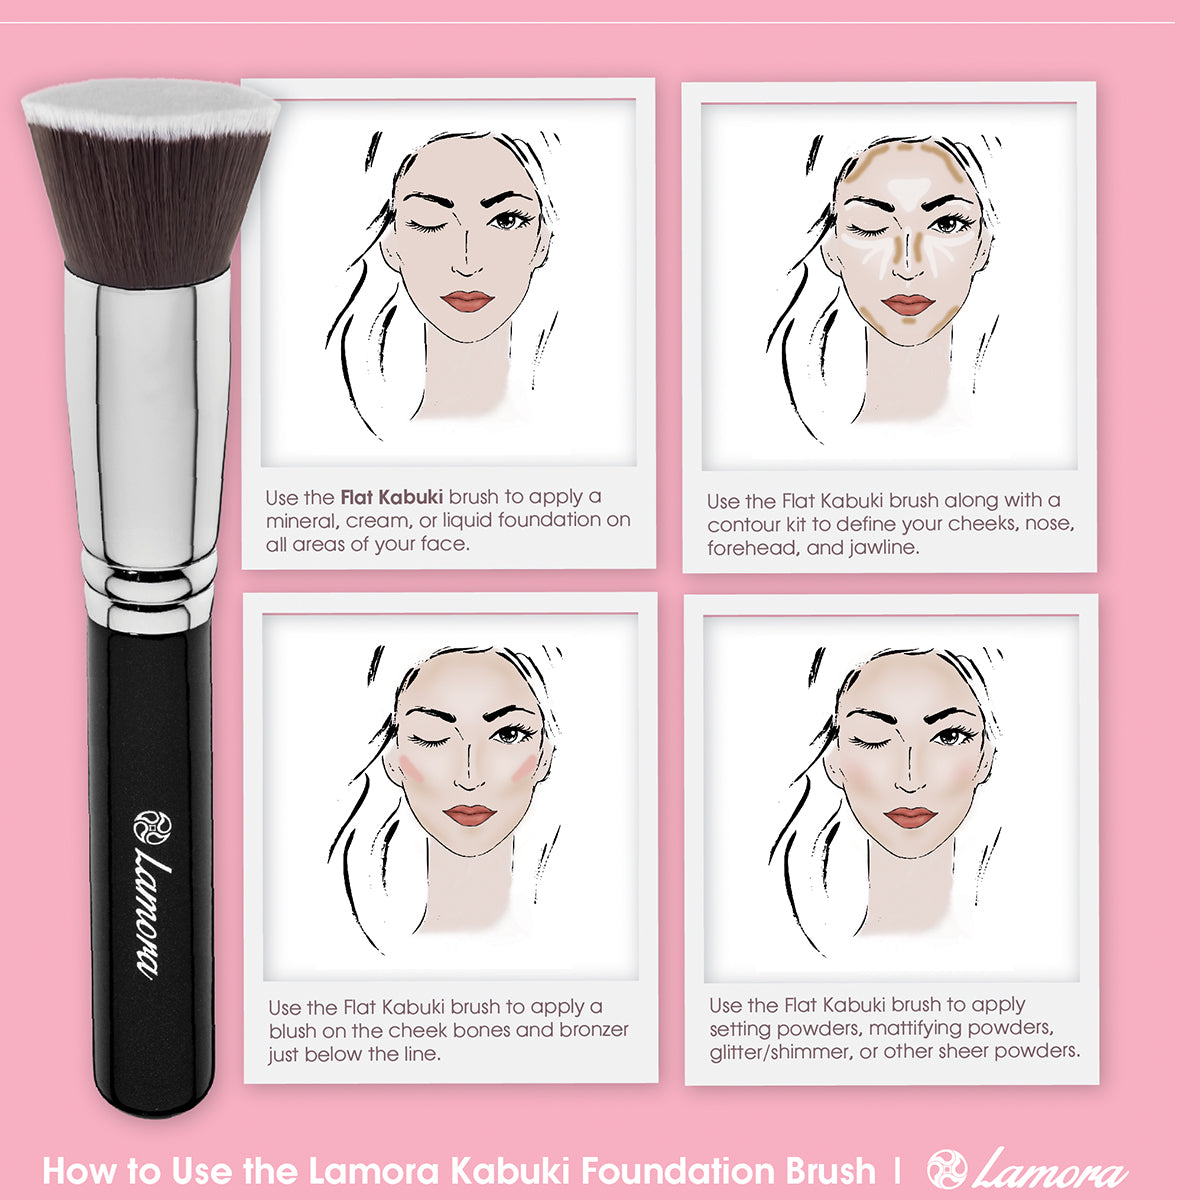 Tutorial explaining how to use a foundation brush in four different ways